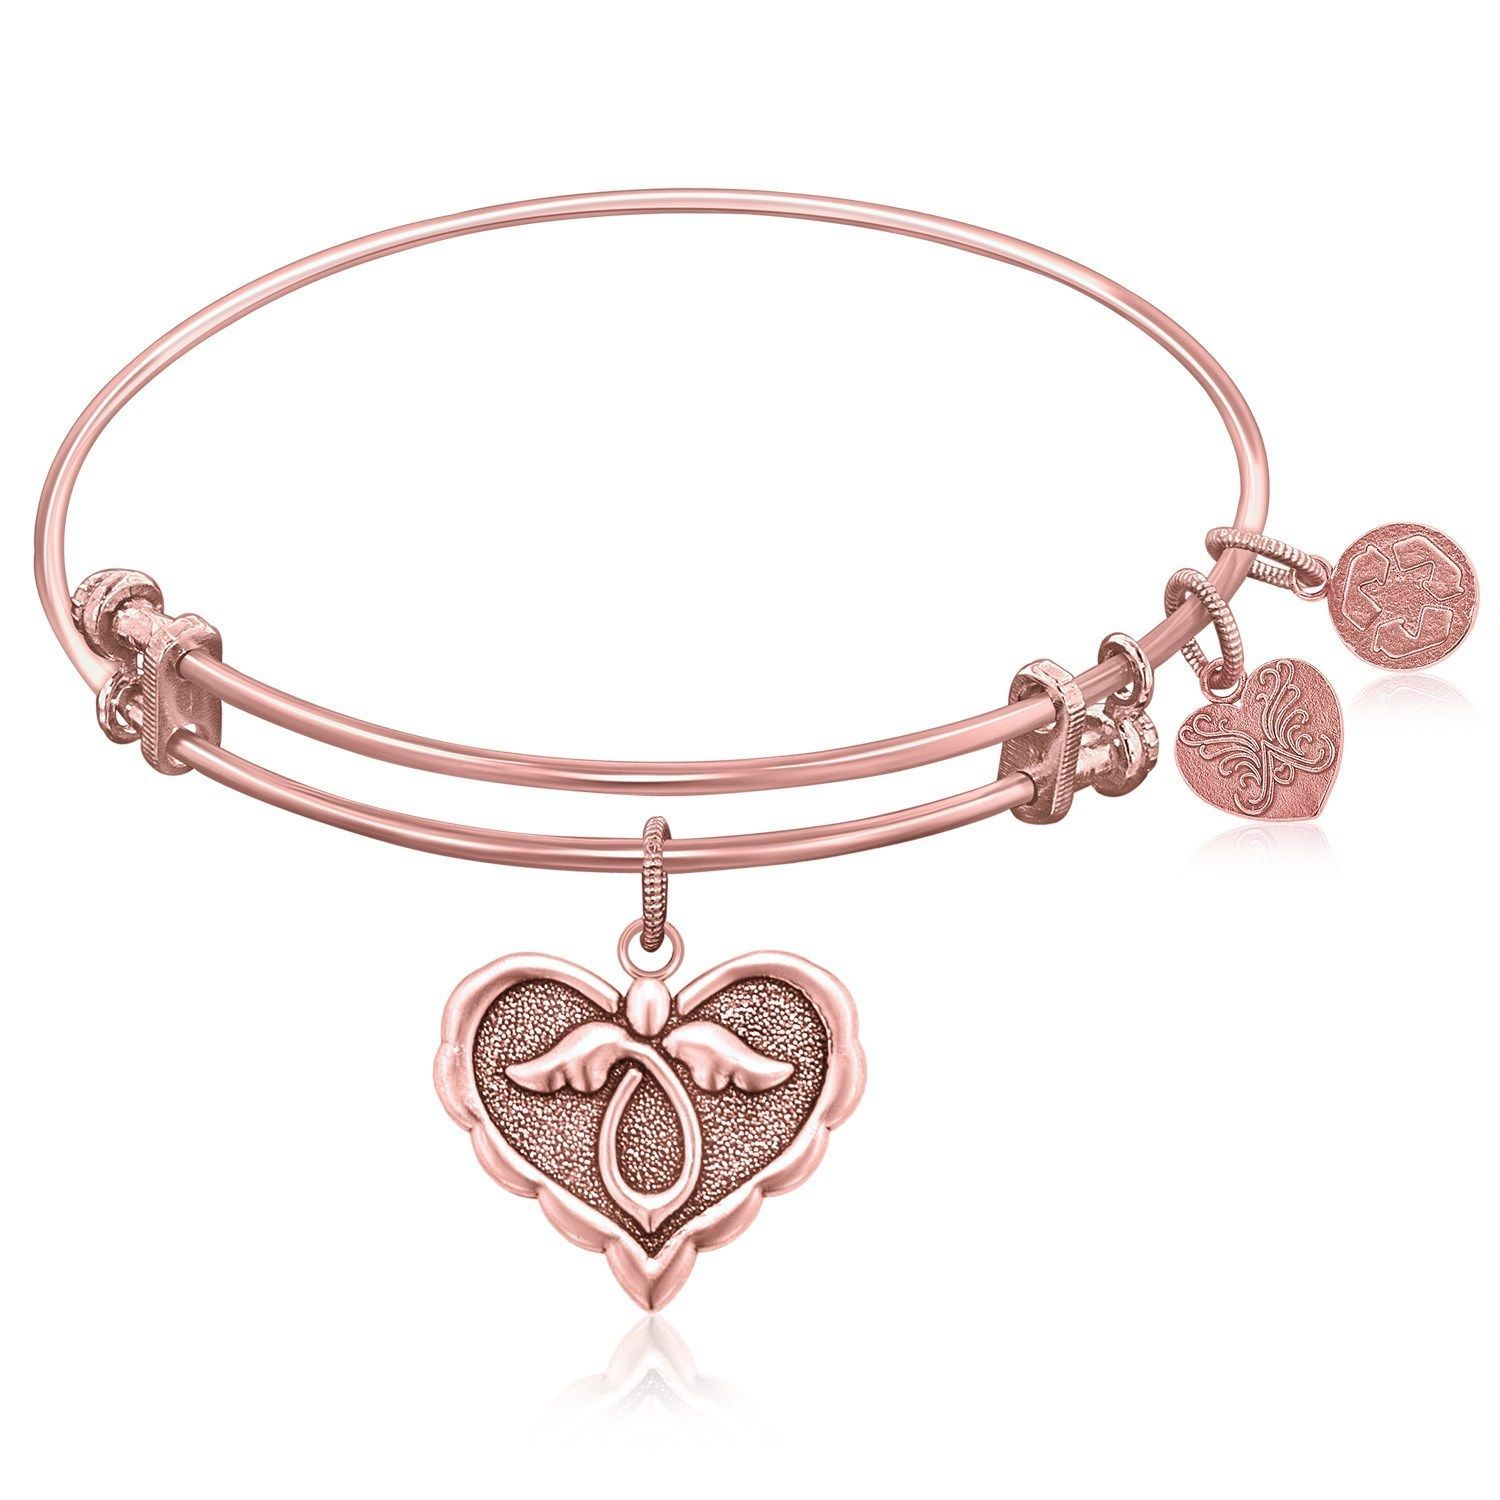 Expandable Bangle in Pink Tone Brass with Angel Comfort Hope Symbol